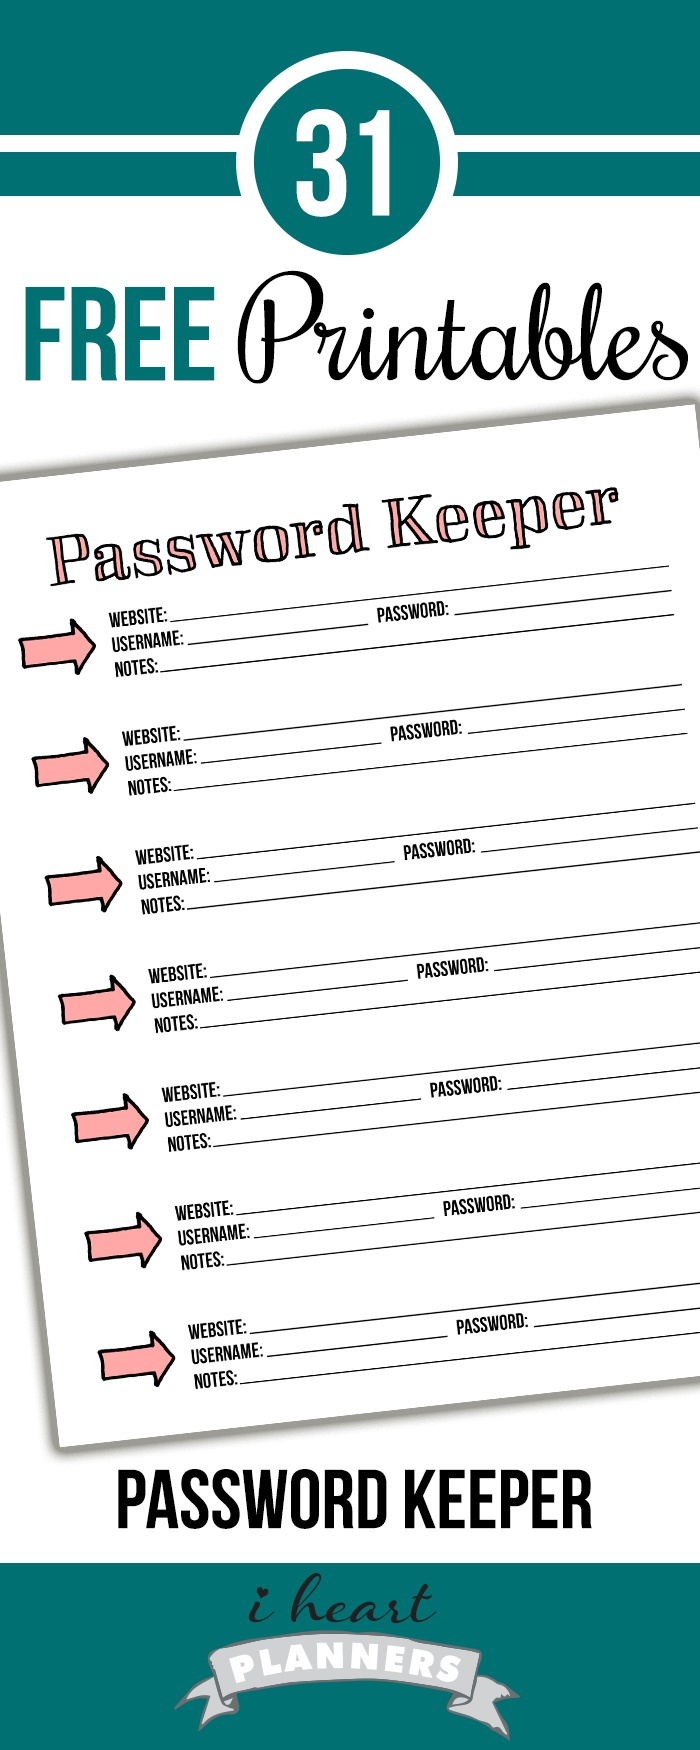 Day 6: Password Keeper - I Heart Planners - Free Printable Password Keeper